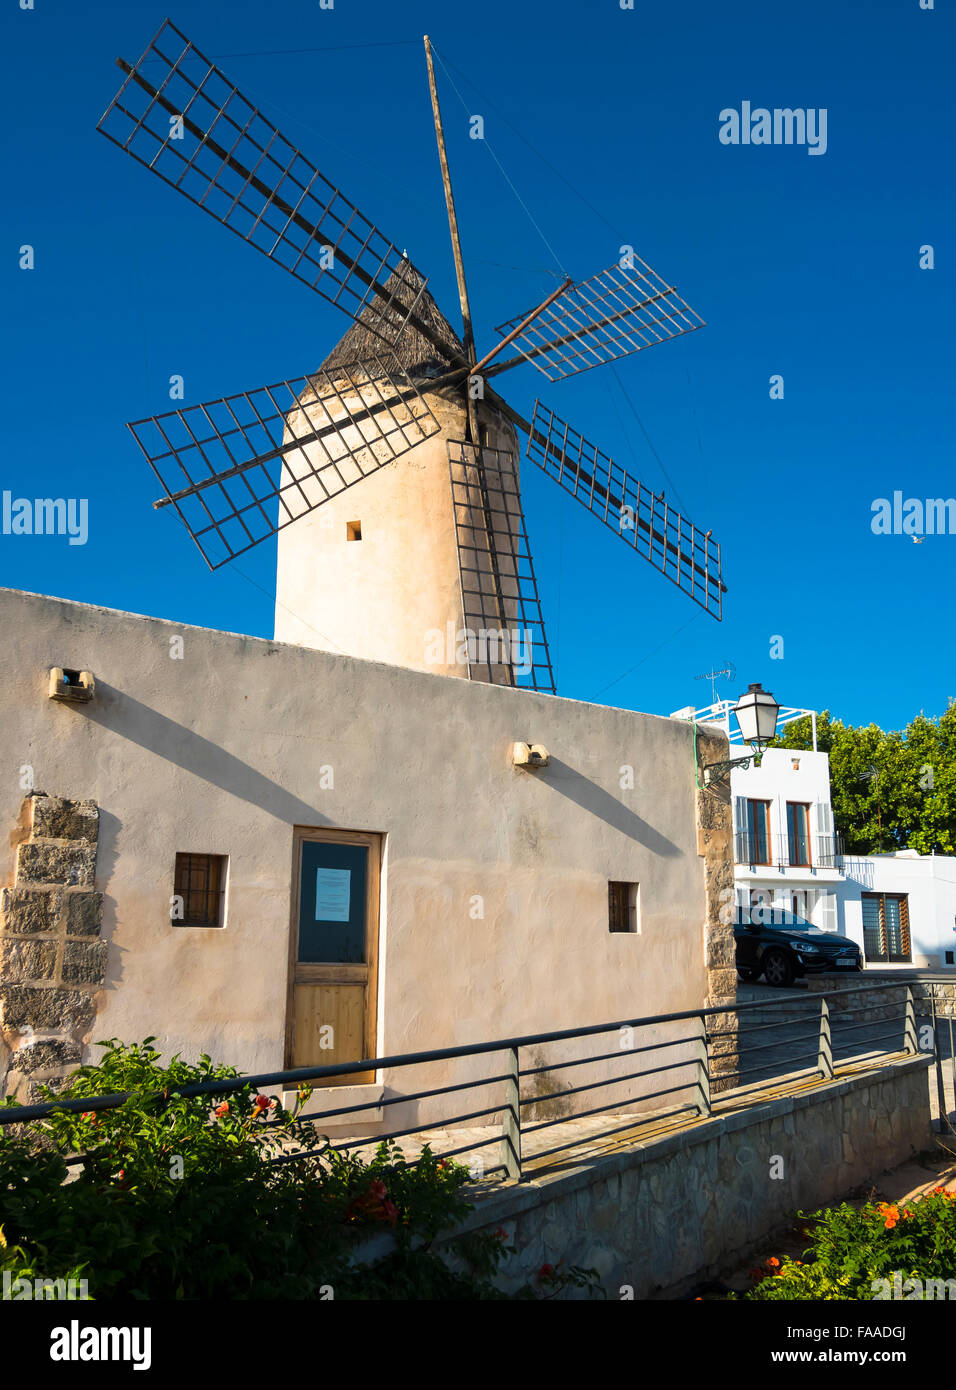 Historic windmill of Es Jonquet, Santa Catalina, Palma de Majorca, Majorca, Balearic Islands, Spain - Stock Image